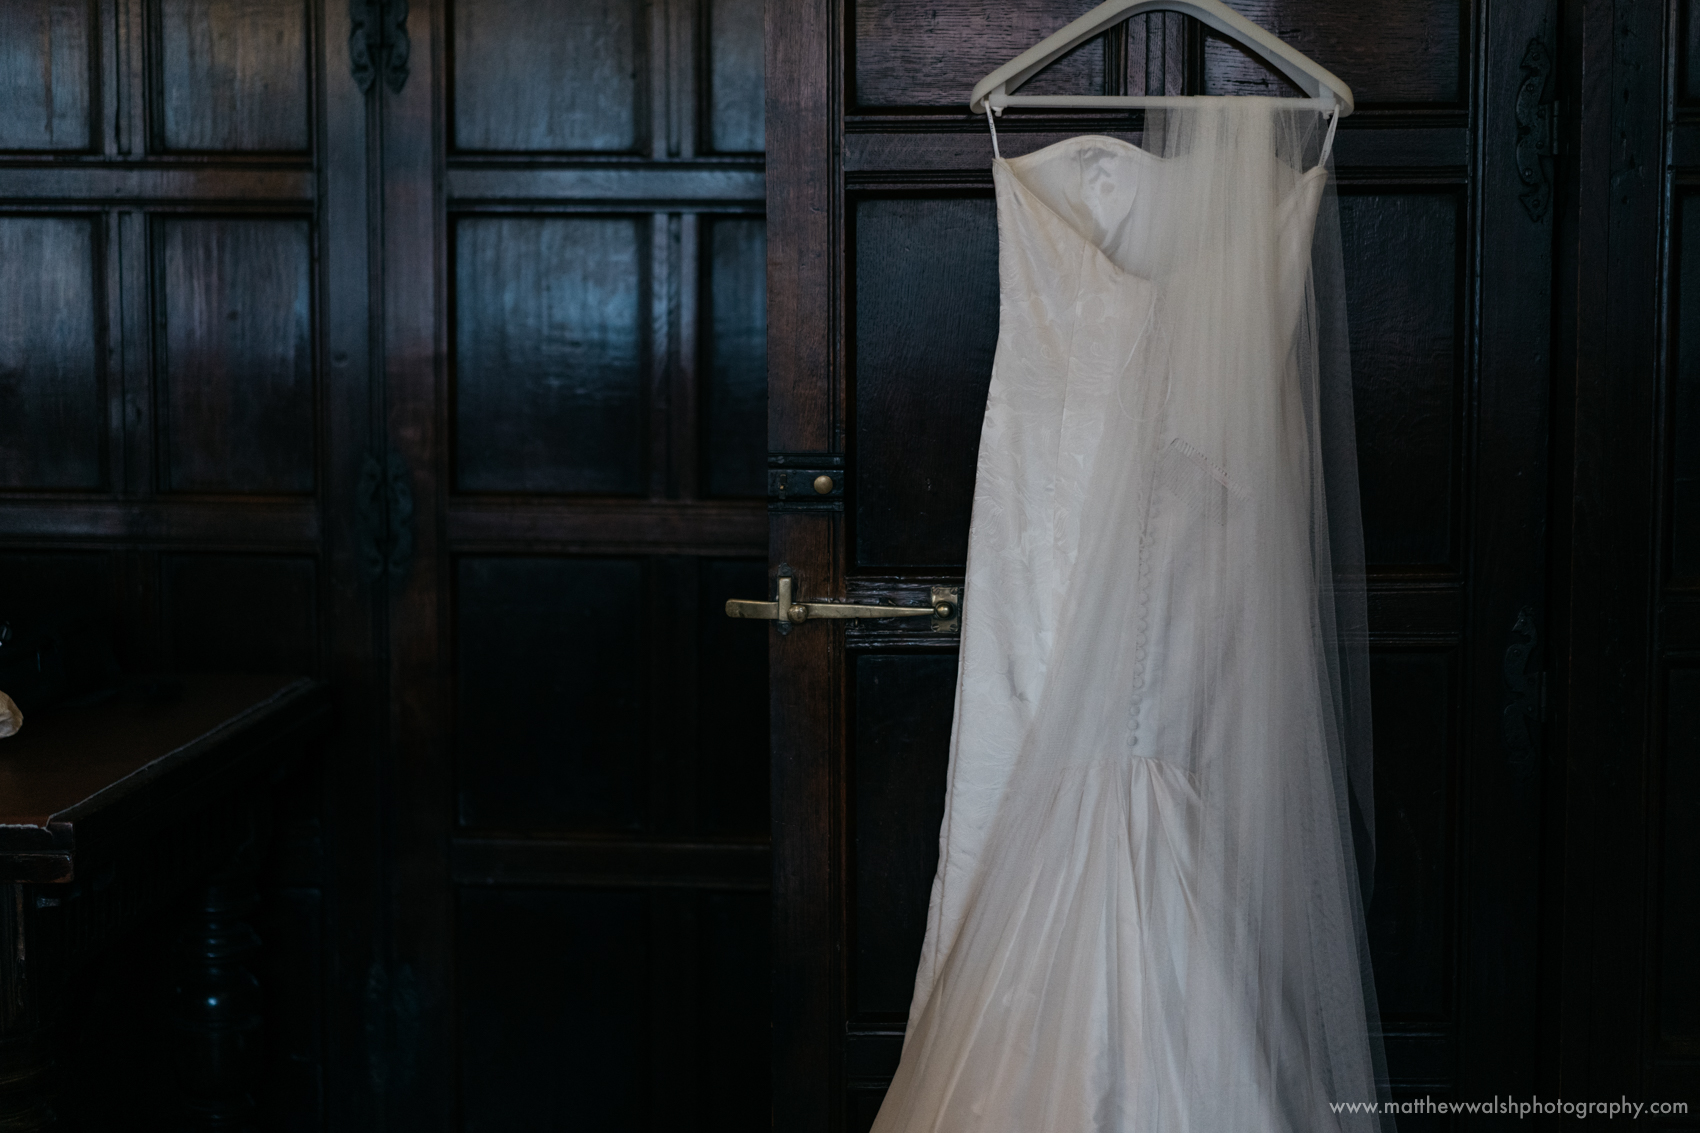 The wedding dress hanging from the door with a backdrop of natural wood panelled walls